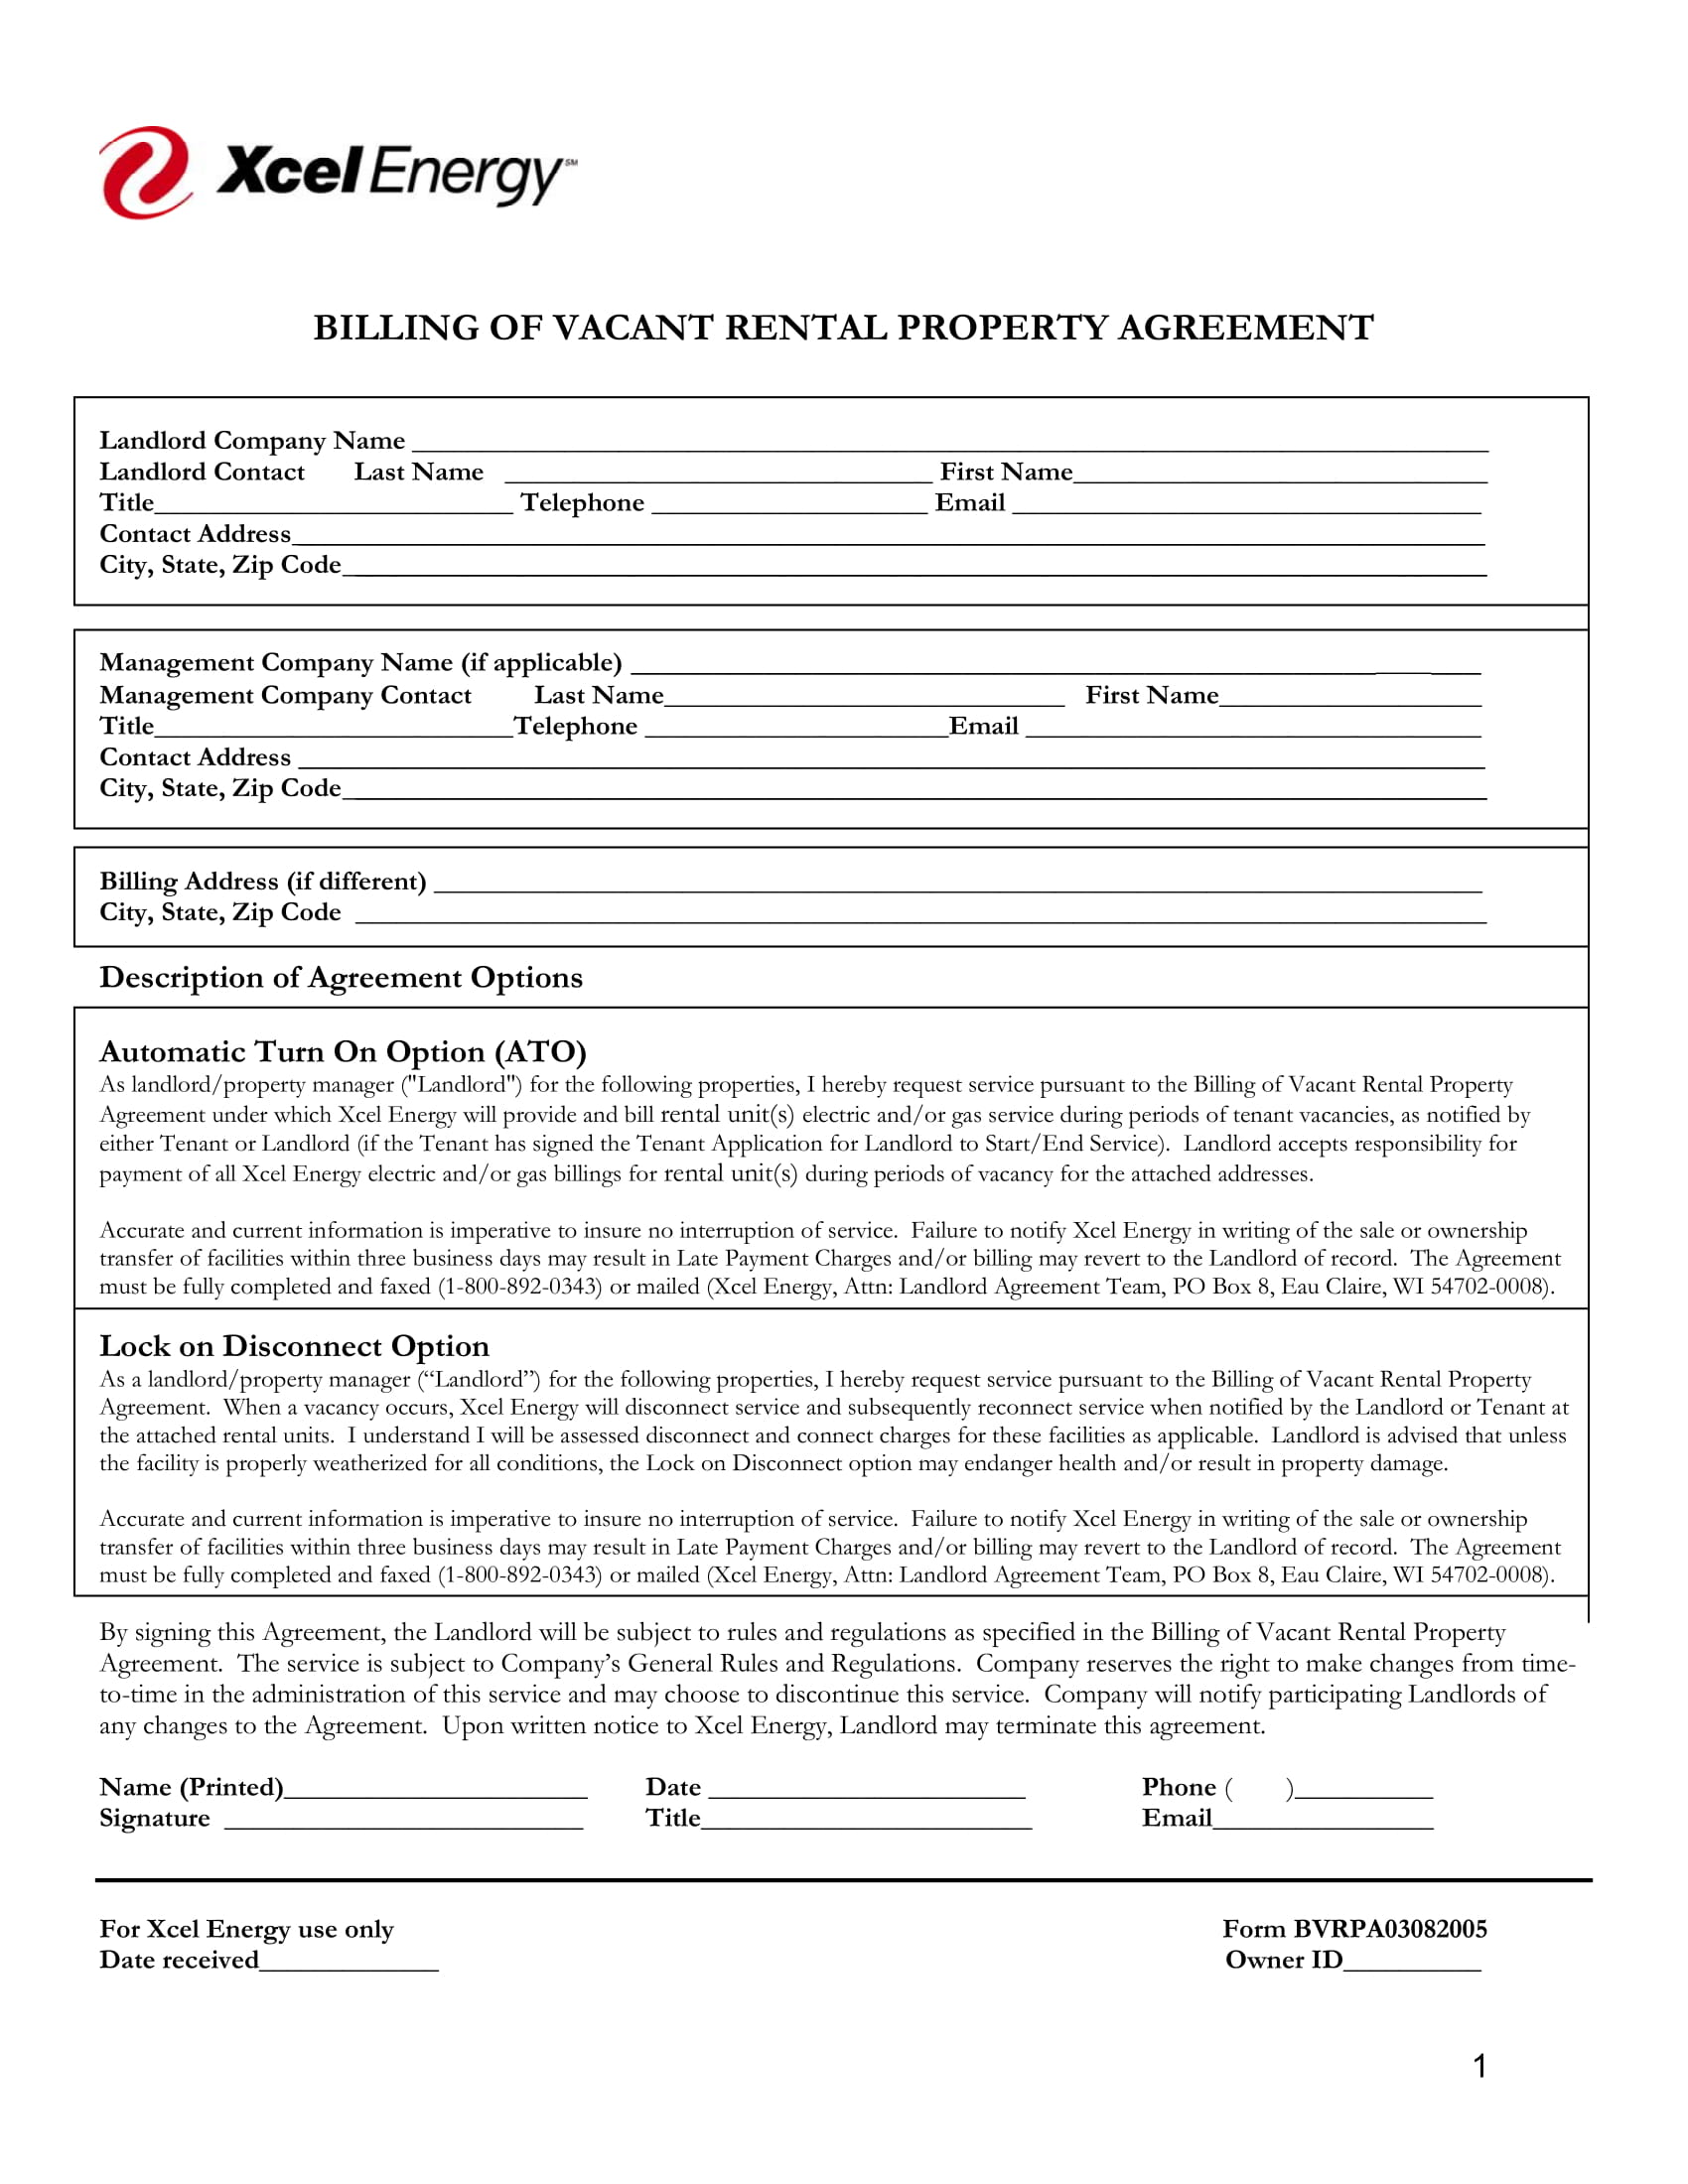 billing of vacant rental property agreement contract form 1